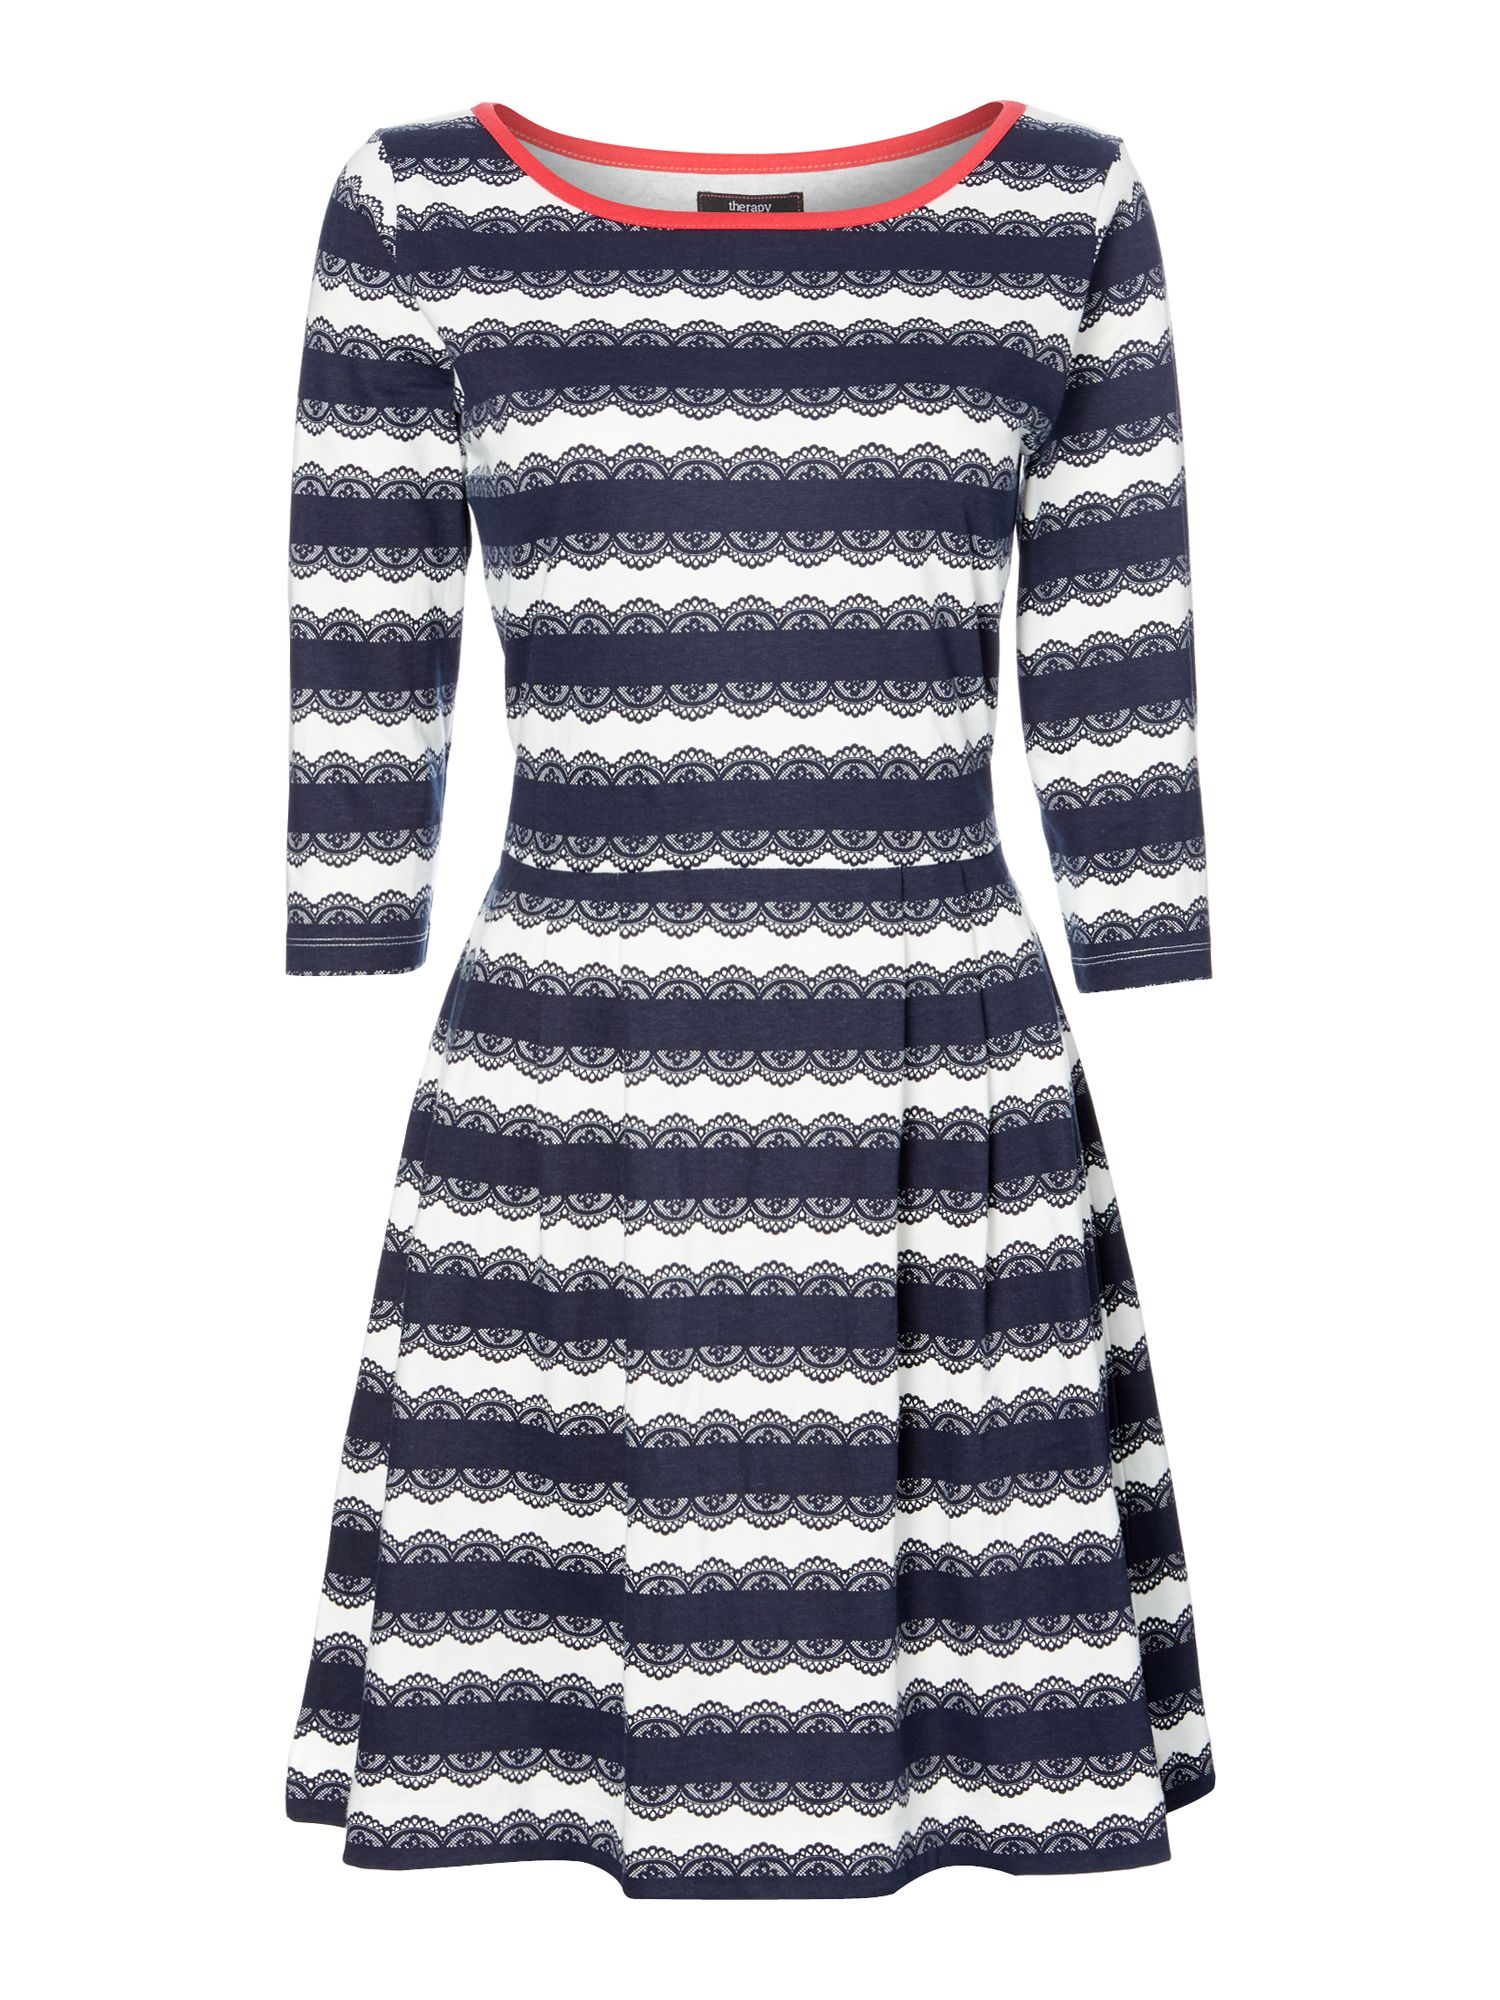 Picot print navy stripe fit and flare dress